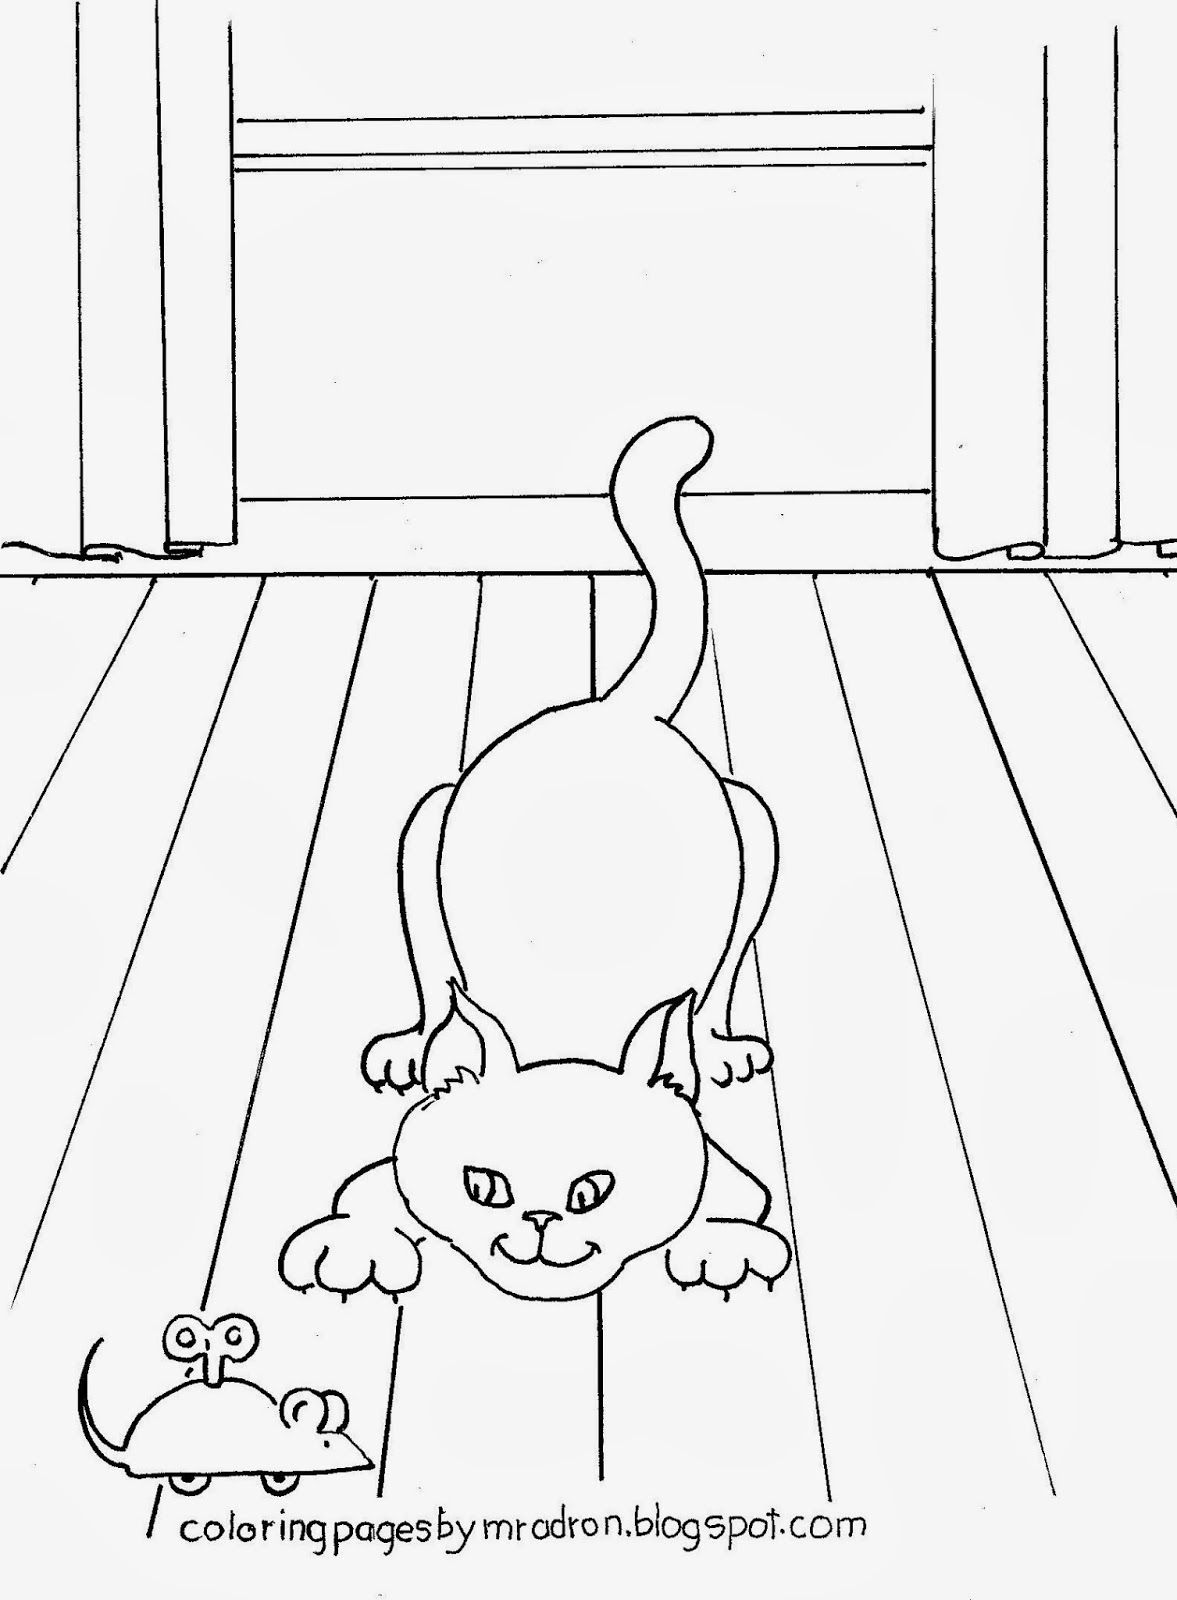 An illustration of a cat and a toy mouse to print and color